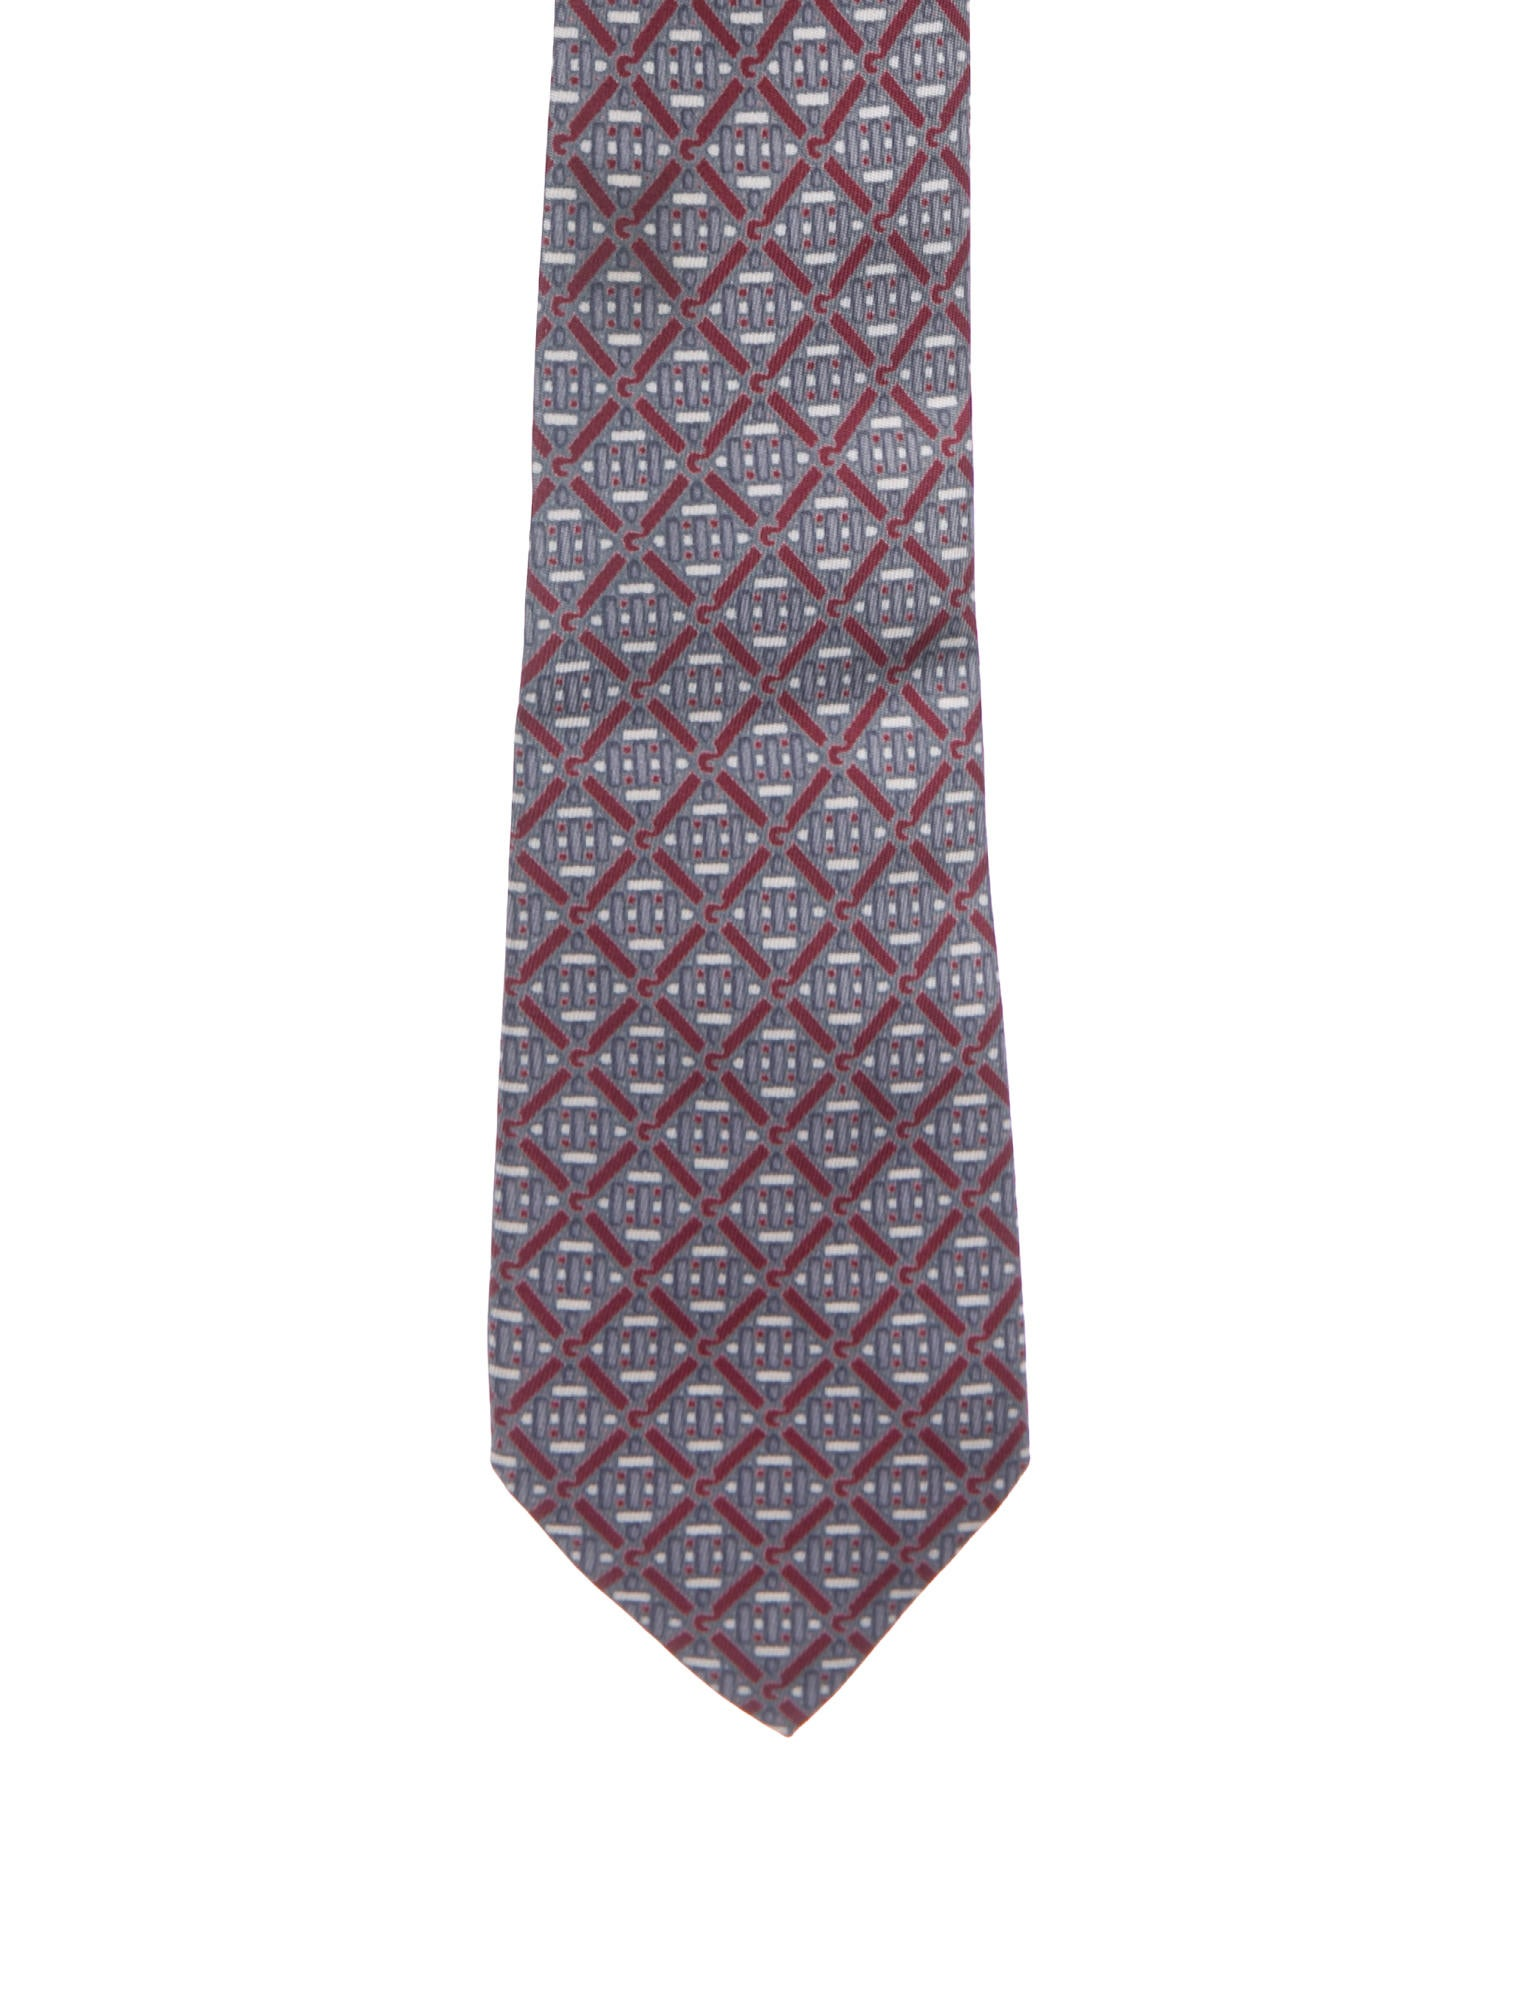 8d410fdb6550 Gucci Silk Abstract Tie - Suiting Accessories - GUC321799 | The RealReal